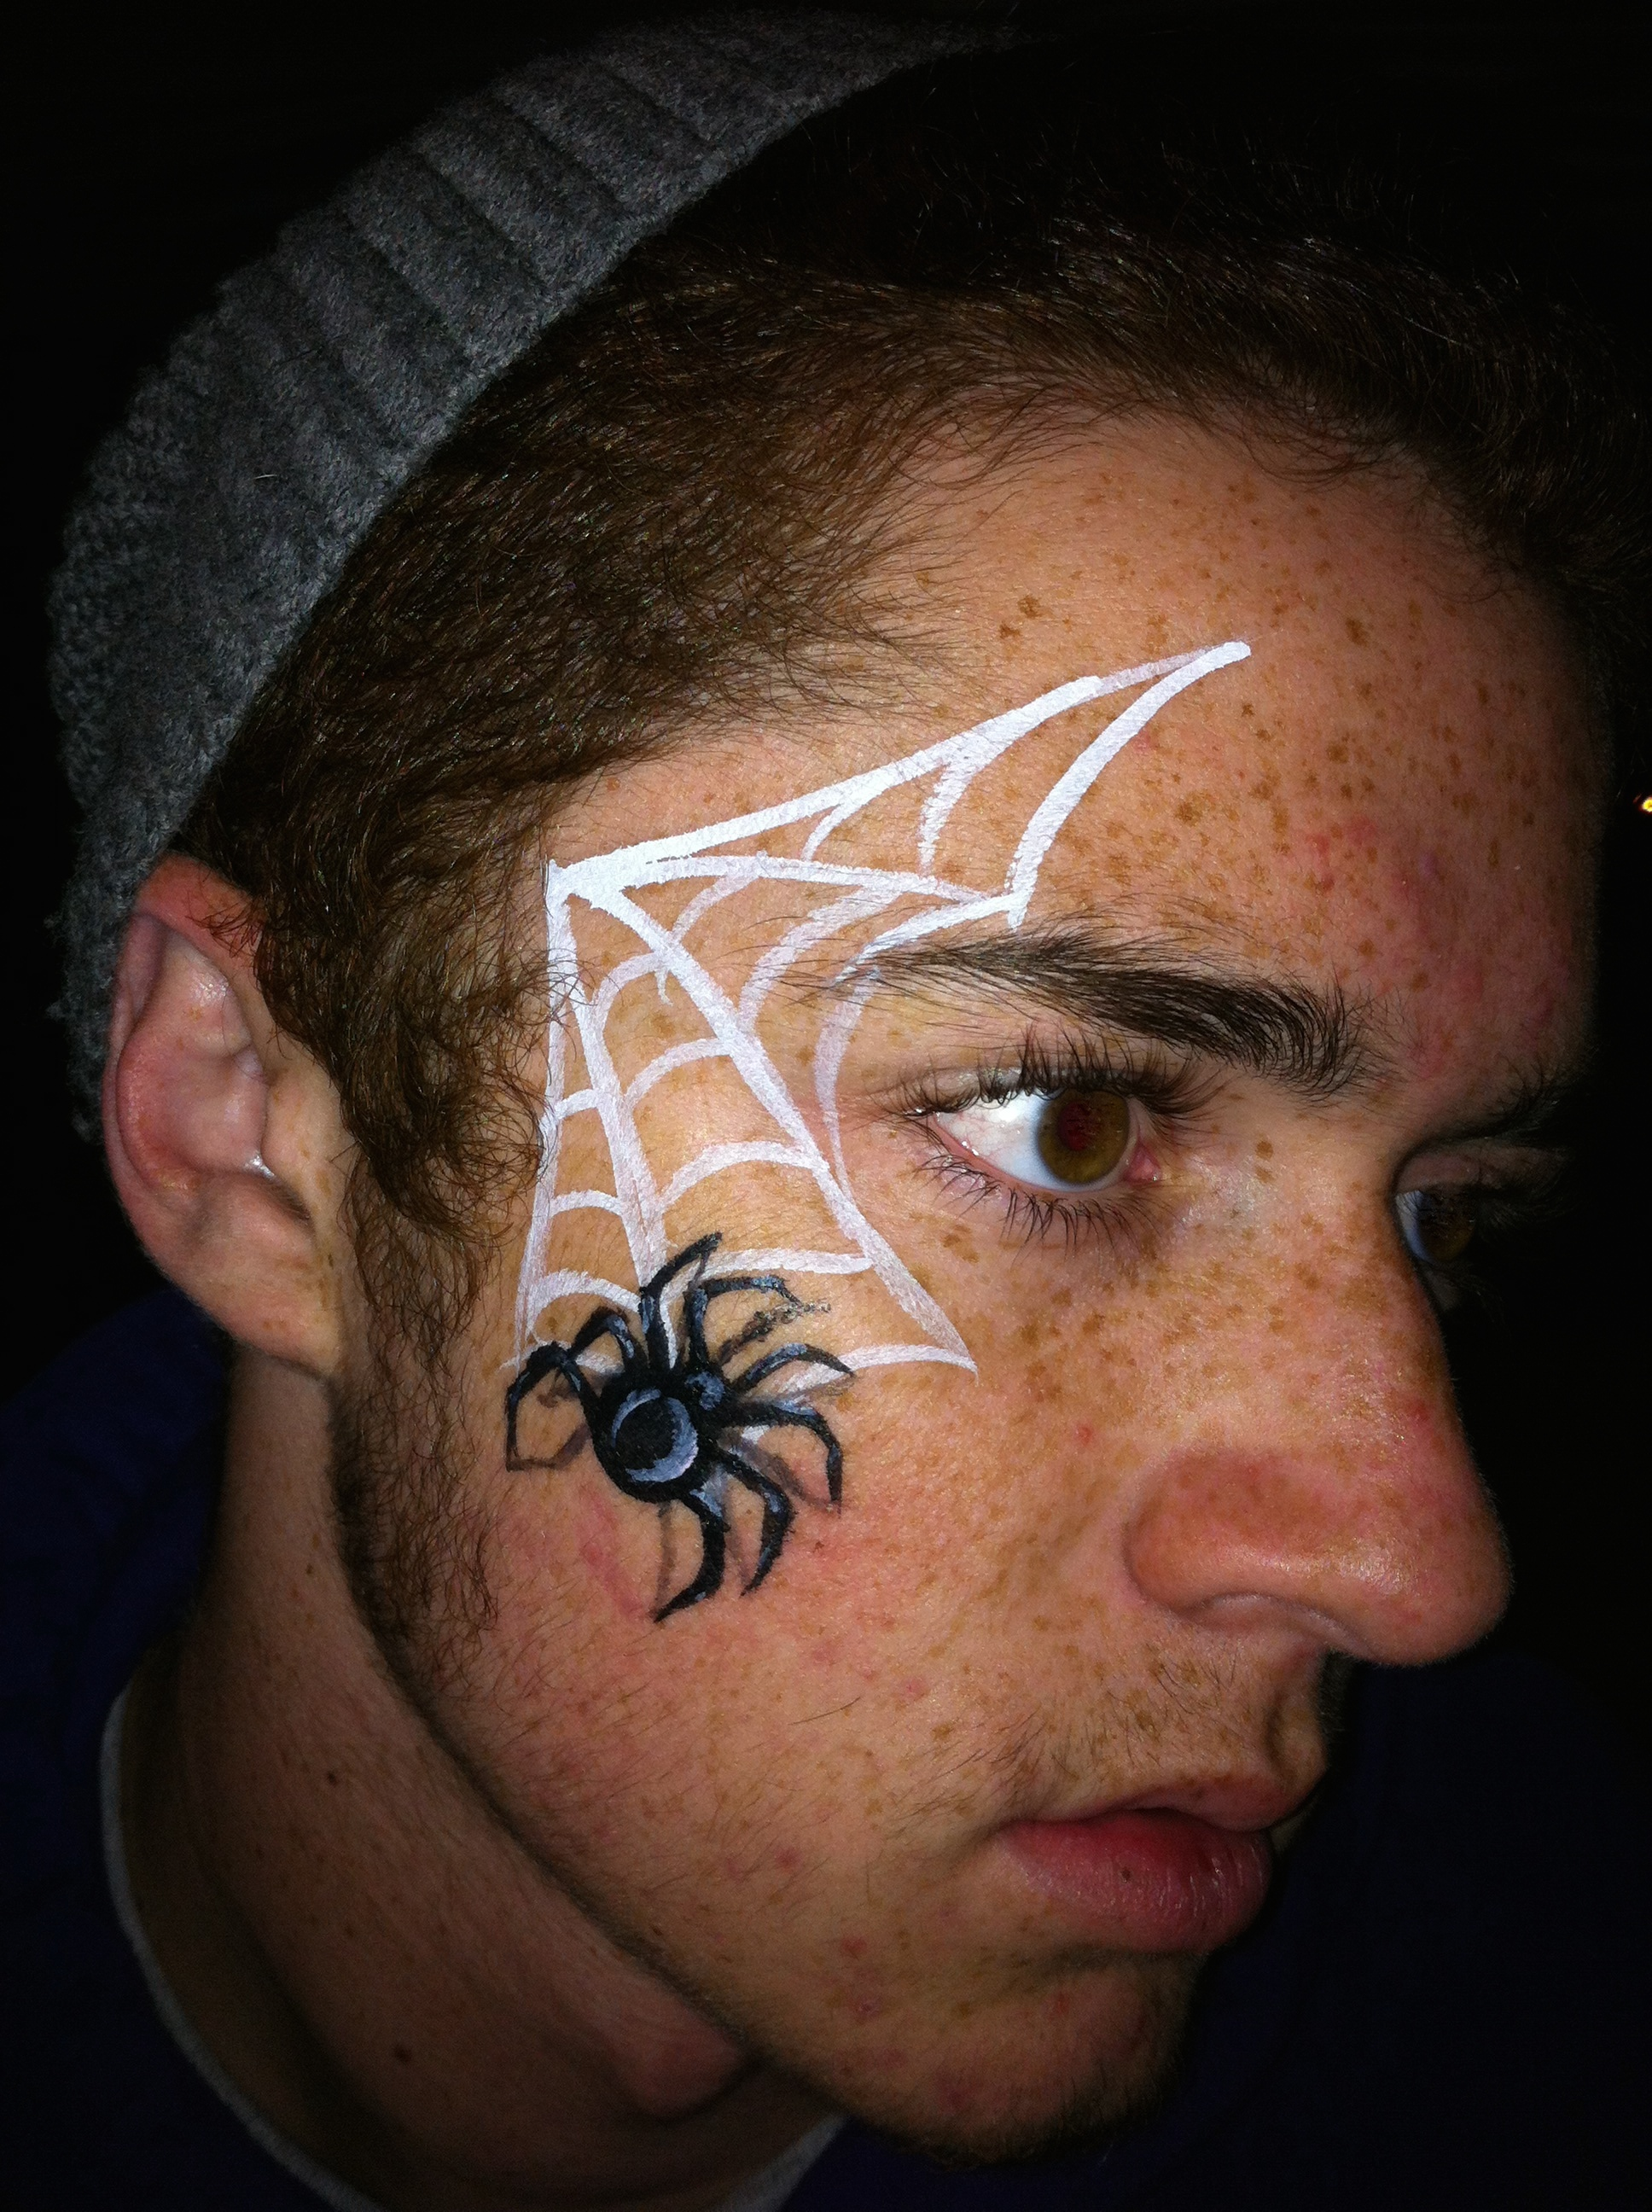 Uncategorized Spiderweb Face Paint gallery whimsy face painting and body art sacramento california spider web